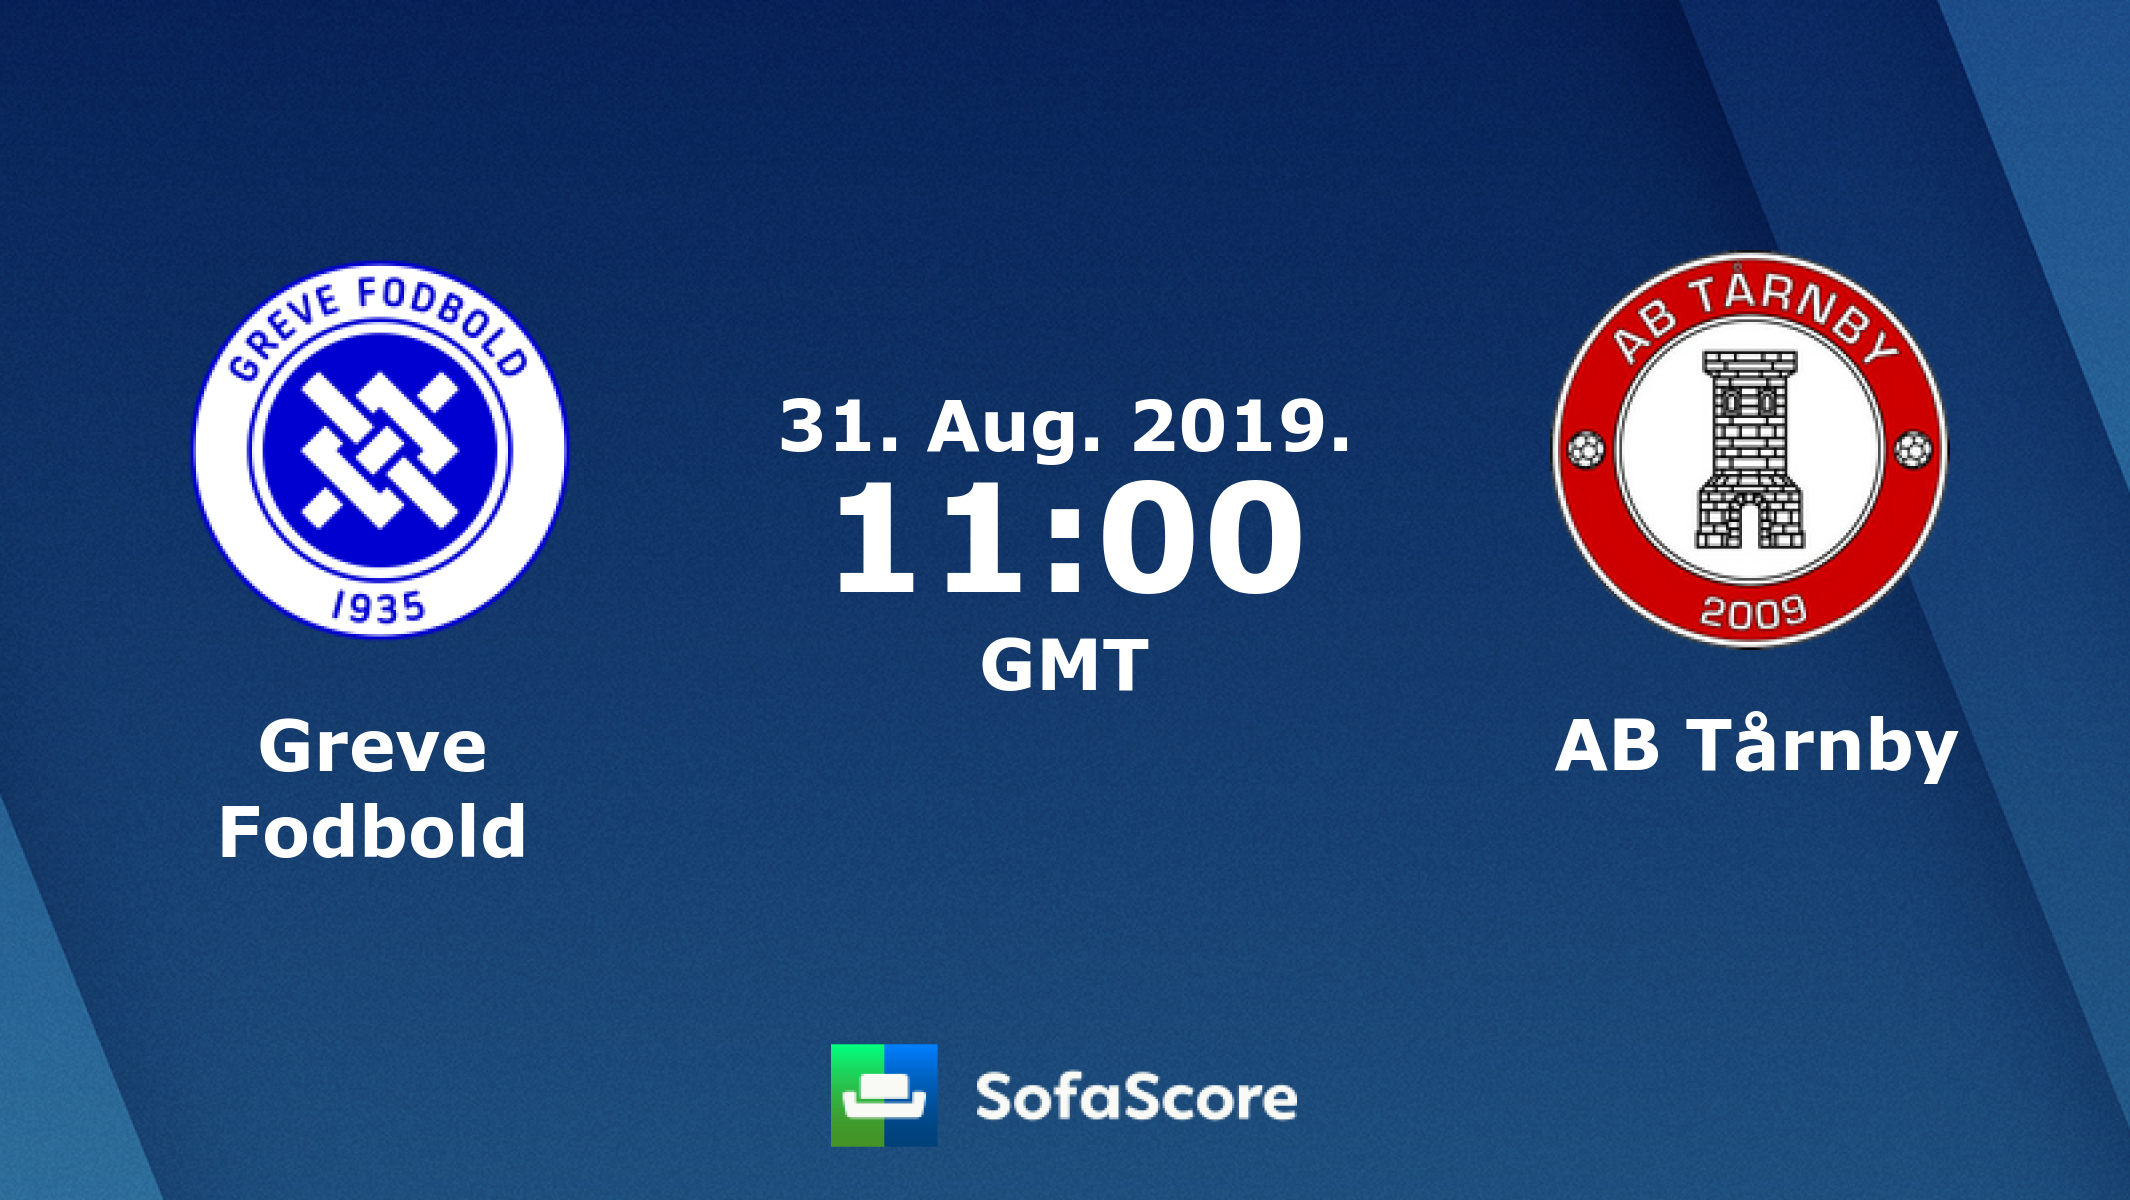 Greve Fodbold AB Tarnby live score, video stream and H2H